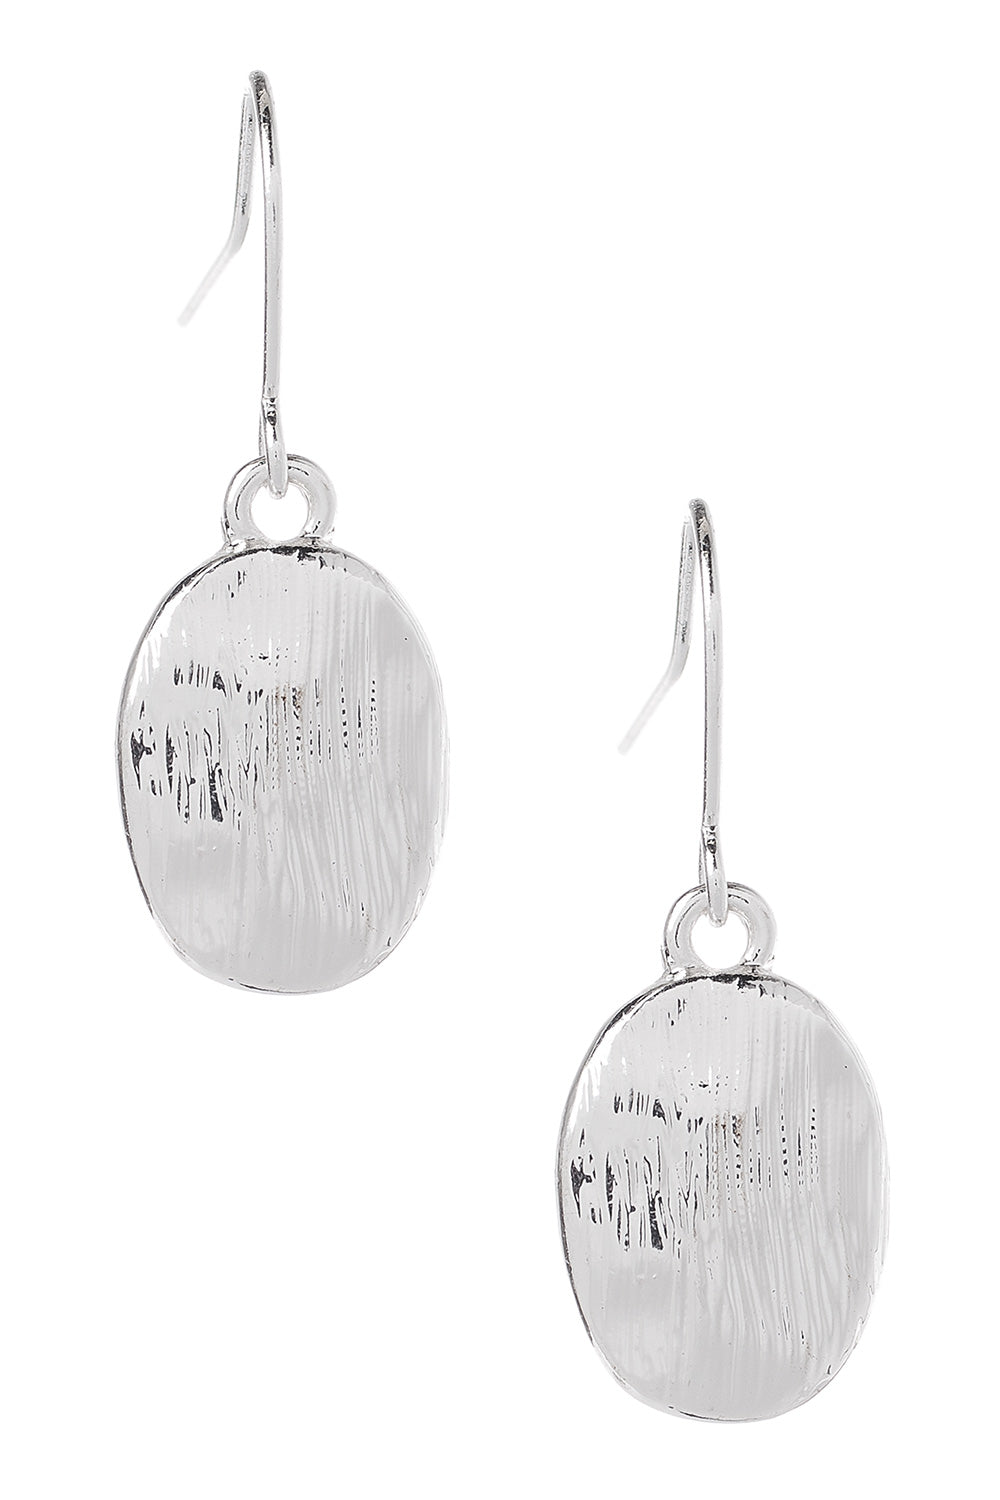 Type 4 Scratching The Surface Earrings